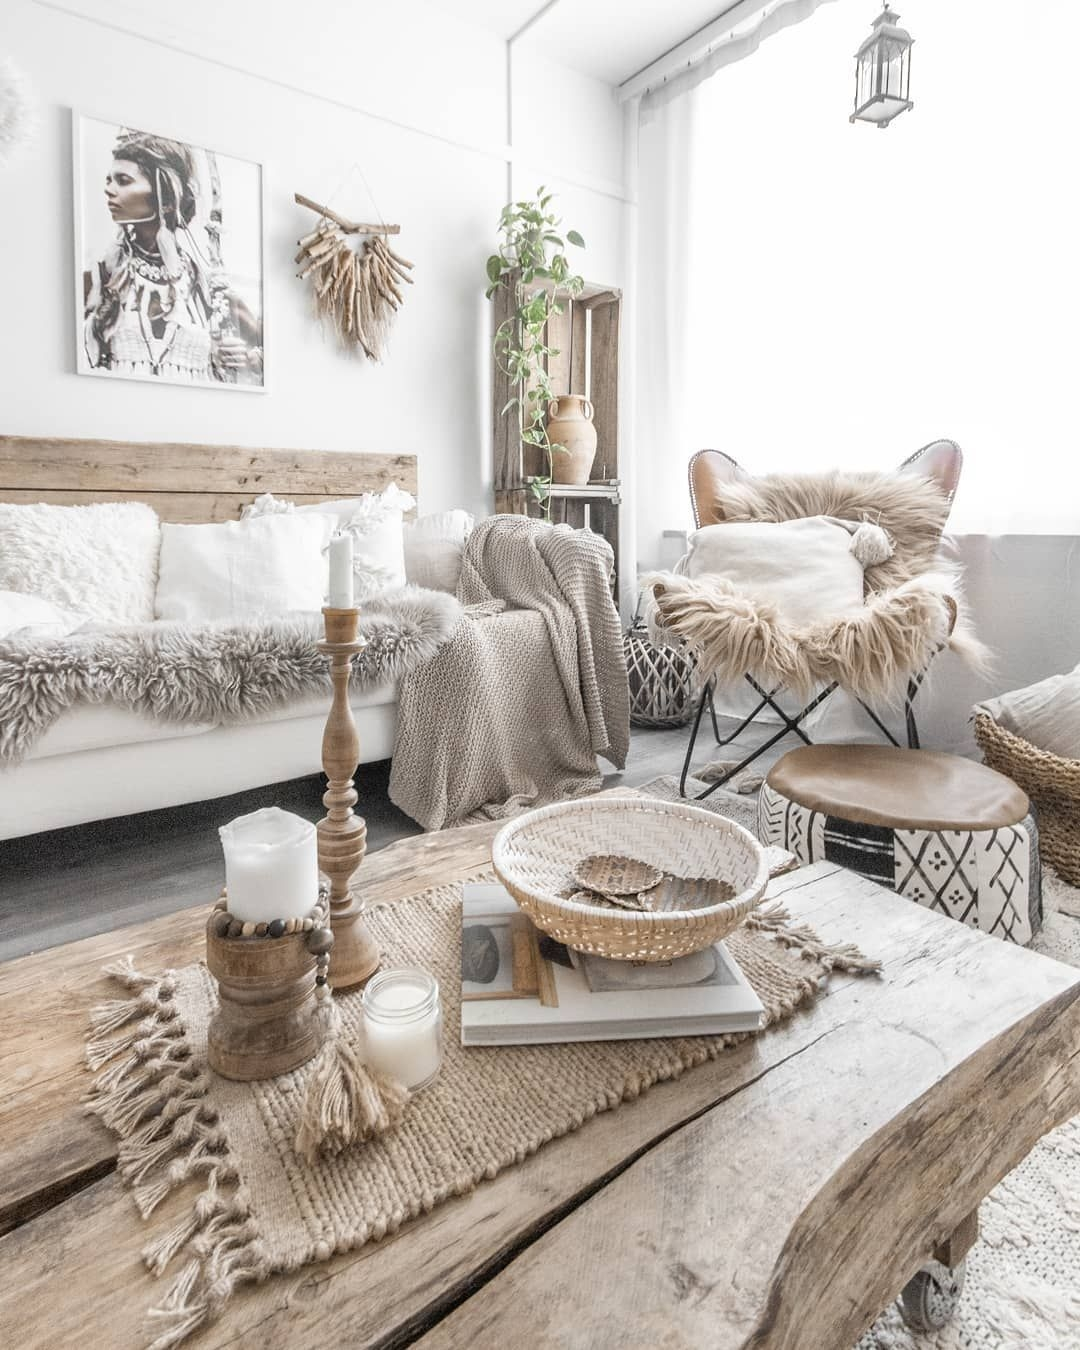 Appealing Boho Living Room Decor On A Budget Ideas Spaces Living Room Chairs On Pleasing today Has Been Pretty Slow Day It S Raining and I Just On Boho Living Room Decor On A Budget Ideas Spaces Living Room Chairs